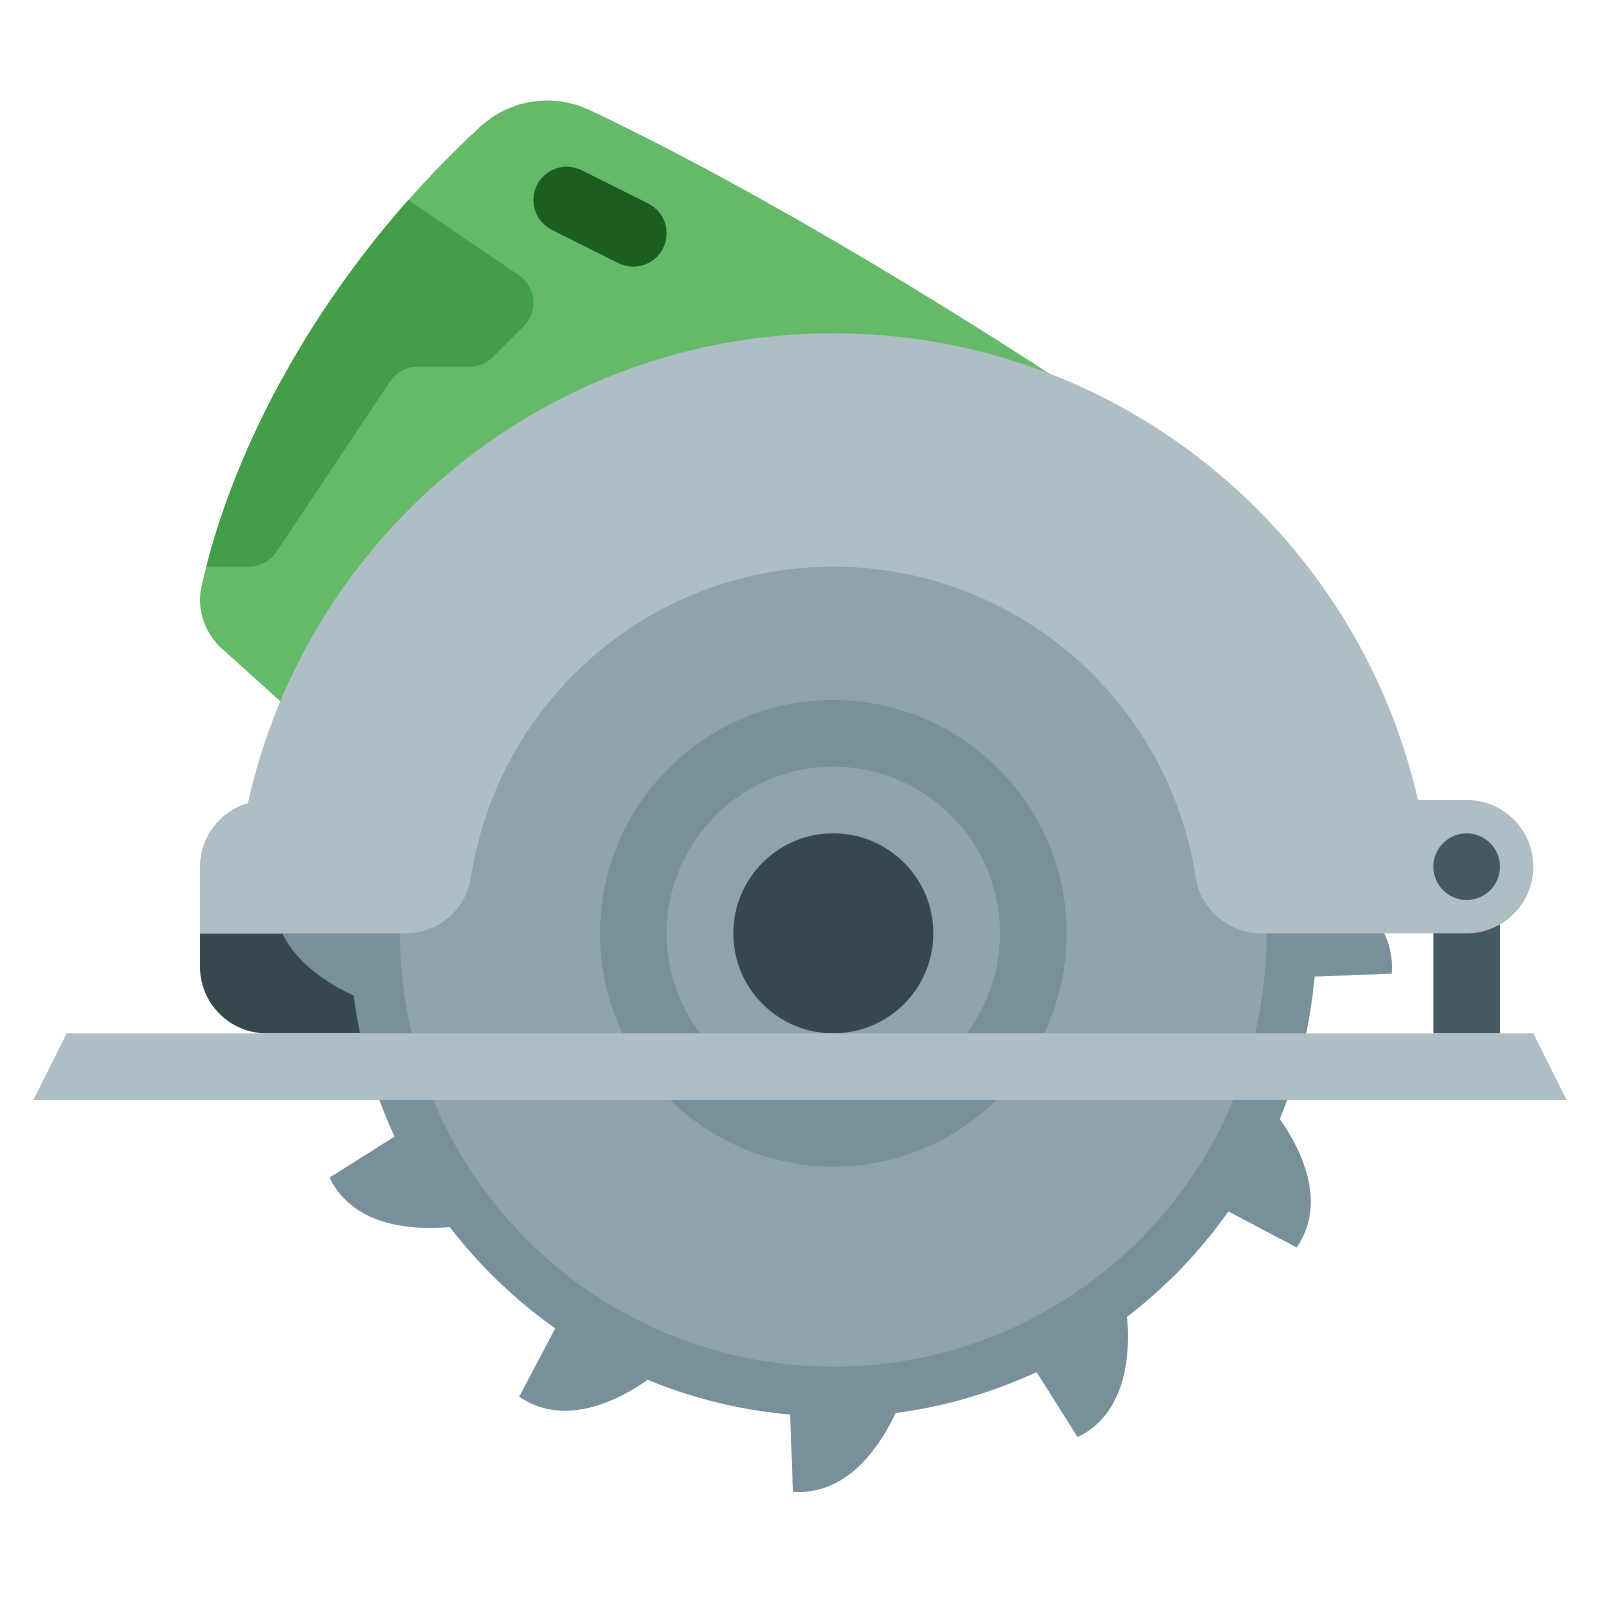 Circular saw icon png free. Download and vector